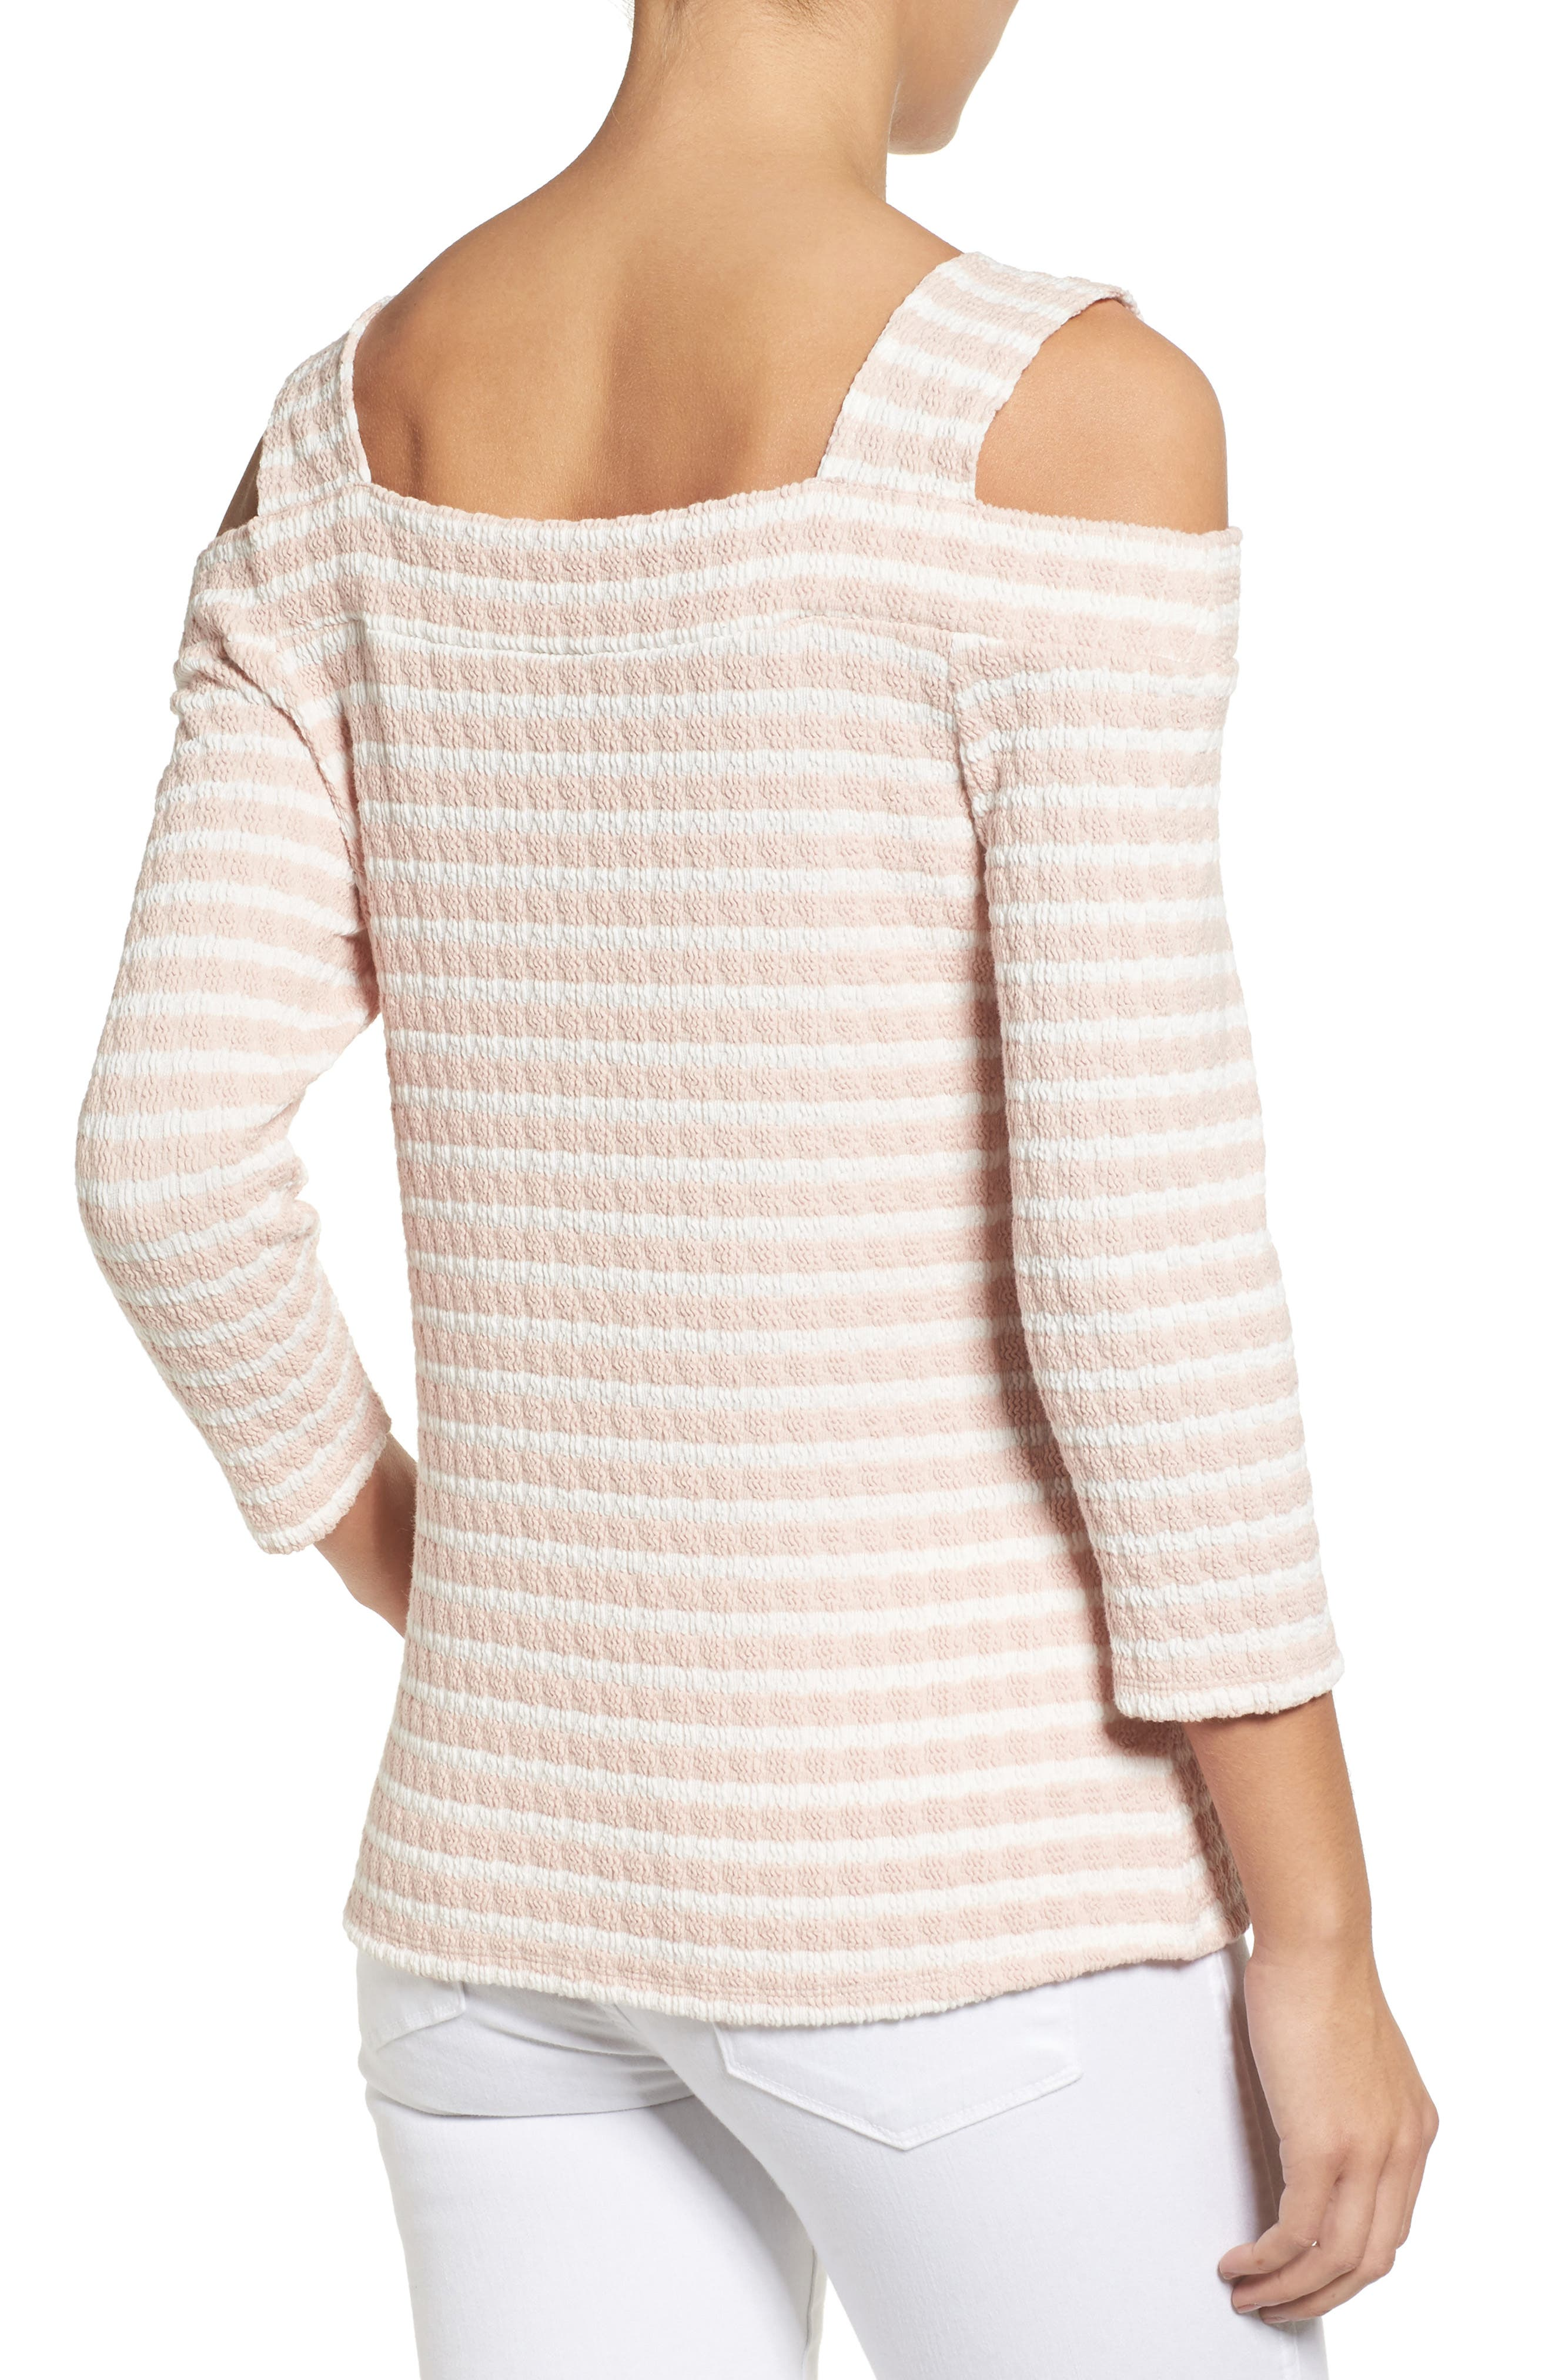 KUT FROM THE KLOTH, Fridi Texture Stripe Cold Shoulder Top, Alternate thumbnail 2, color, 194